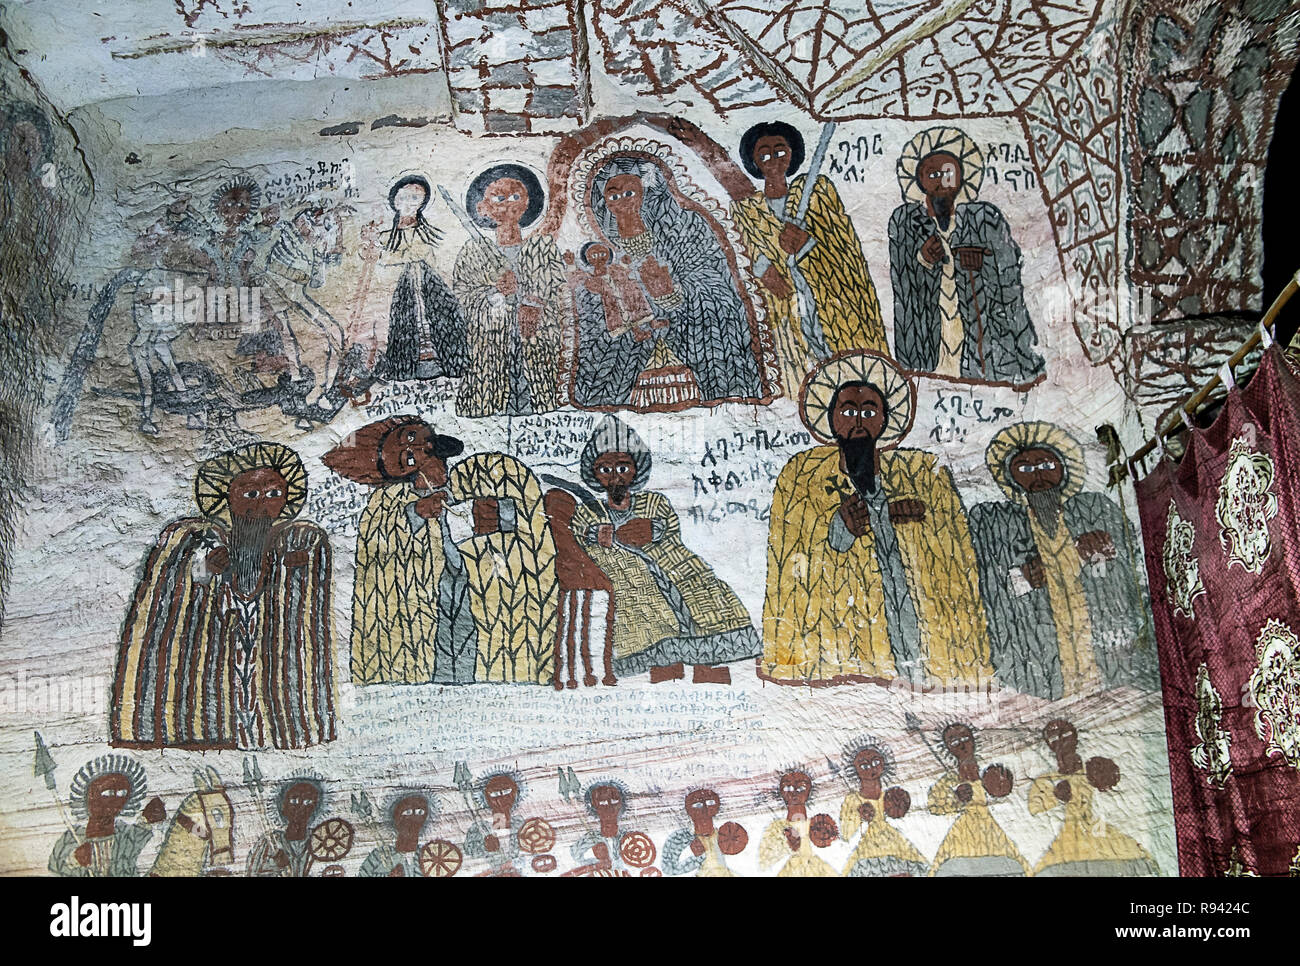 Fresco in the rock-hewn church Yohannes Maequddi, Gheralta region, Tigray, Ethiopia Stock Photo